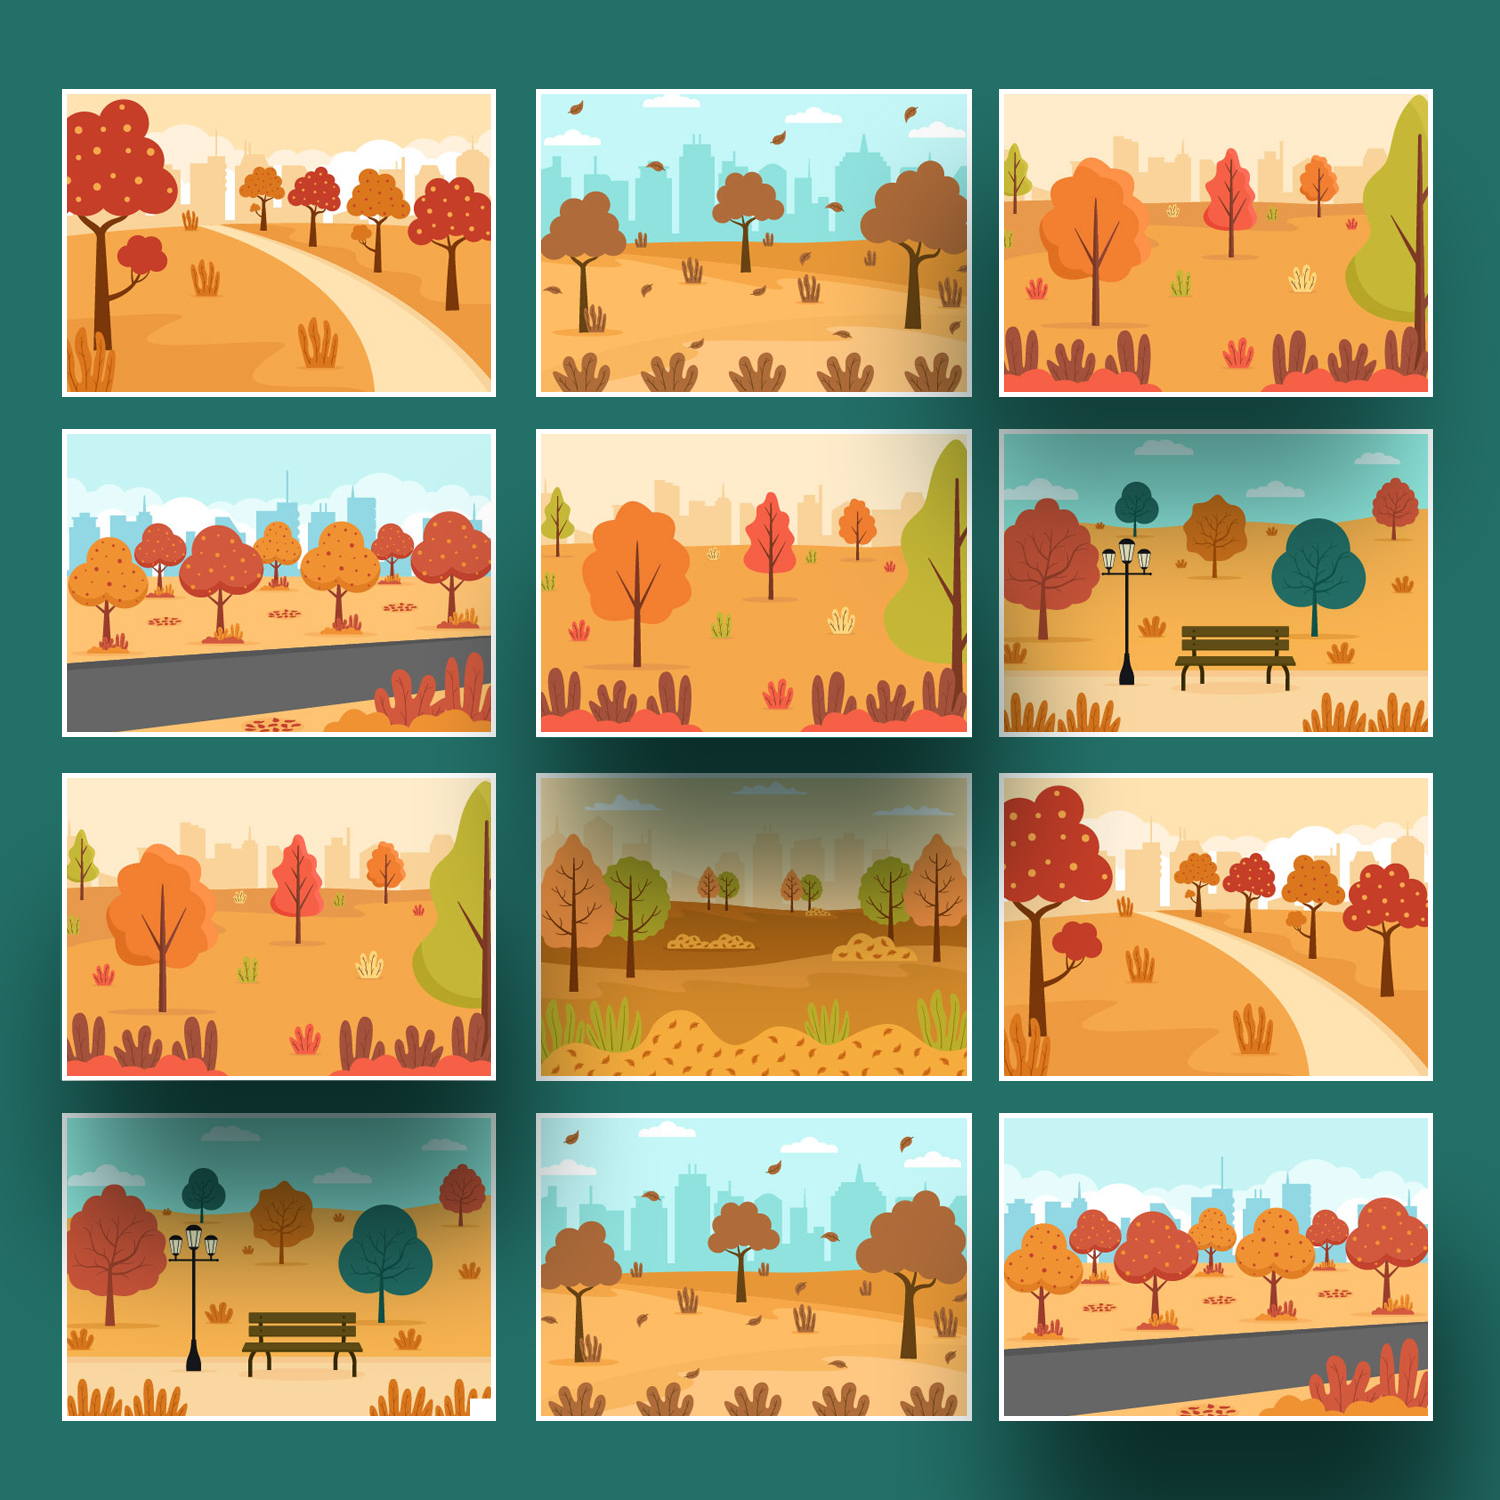 22 Autumn Background Landing Page Illustrations cover images.